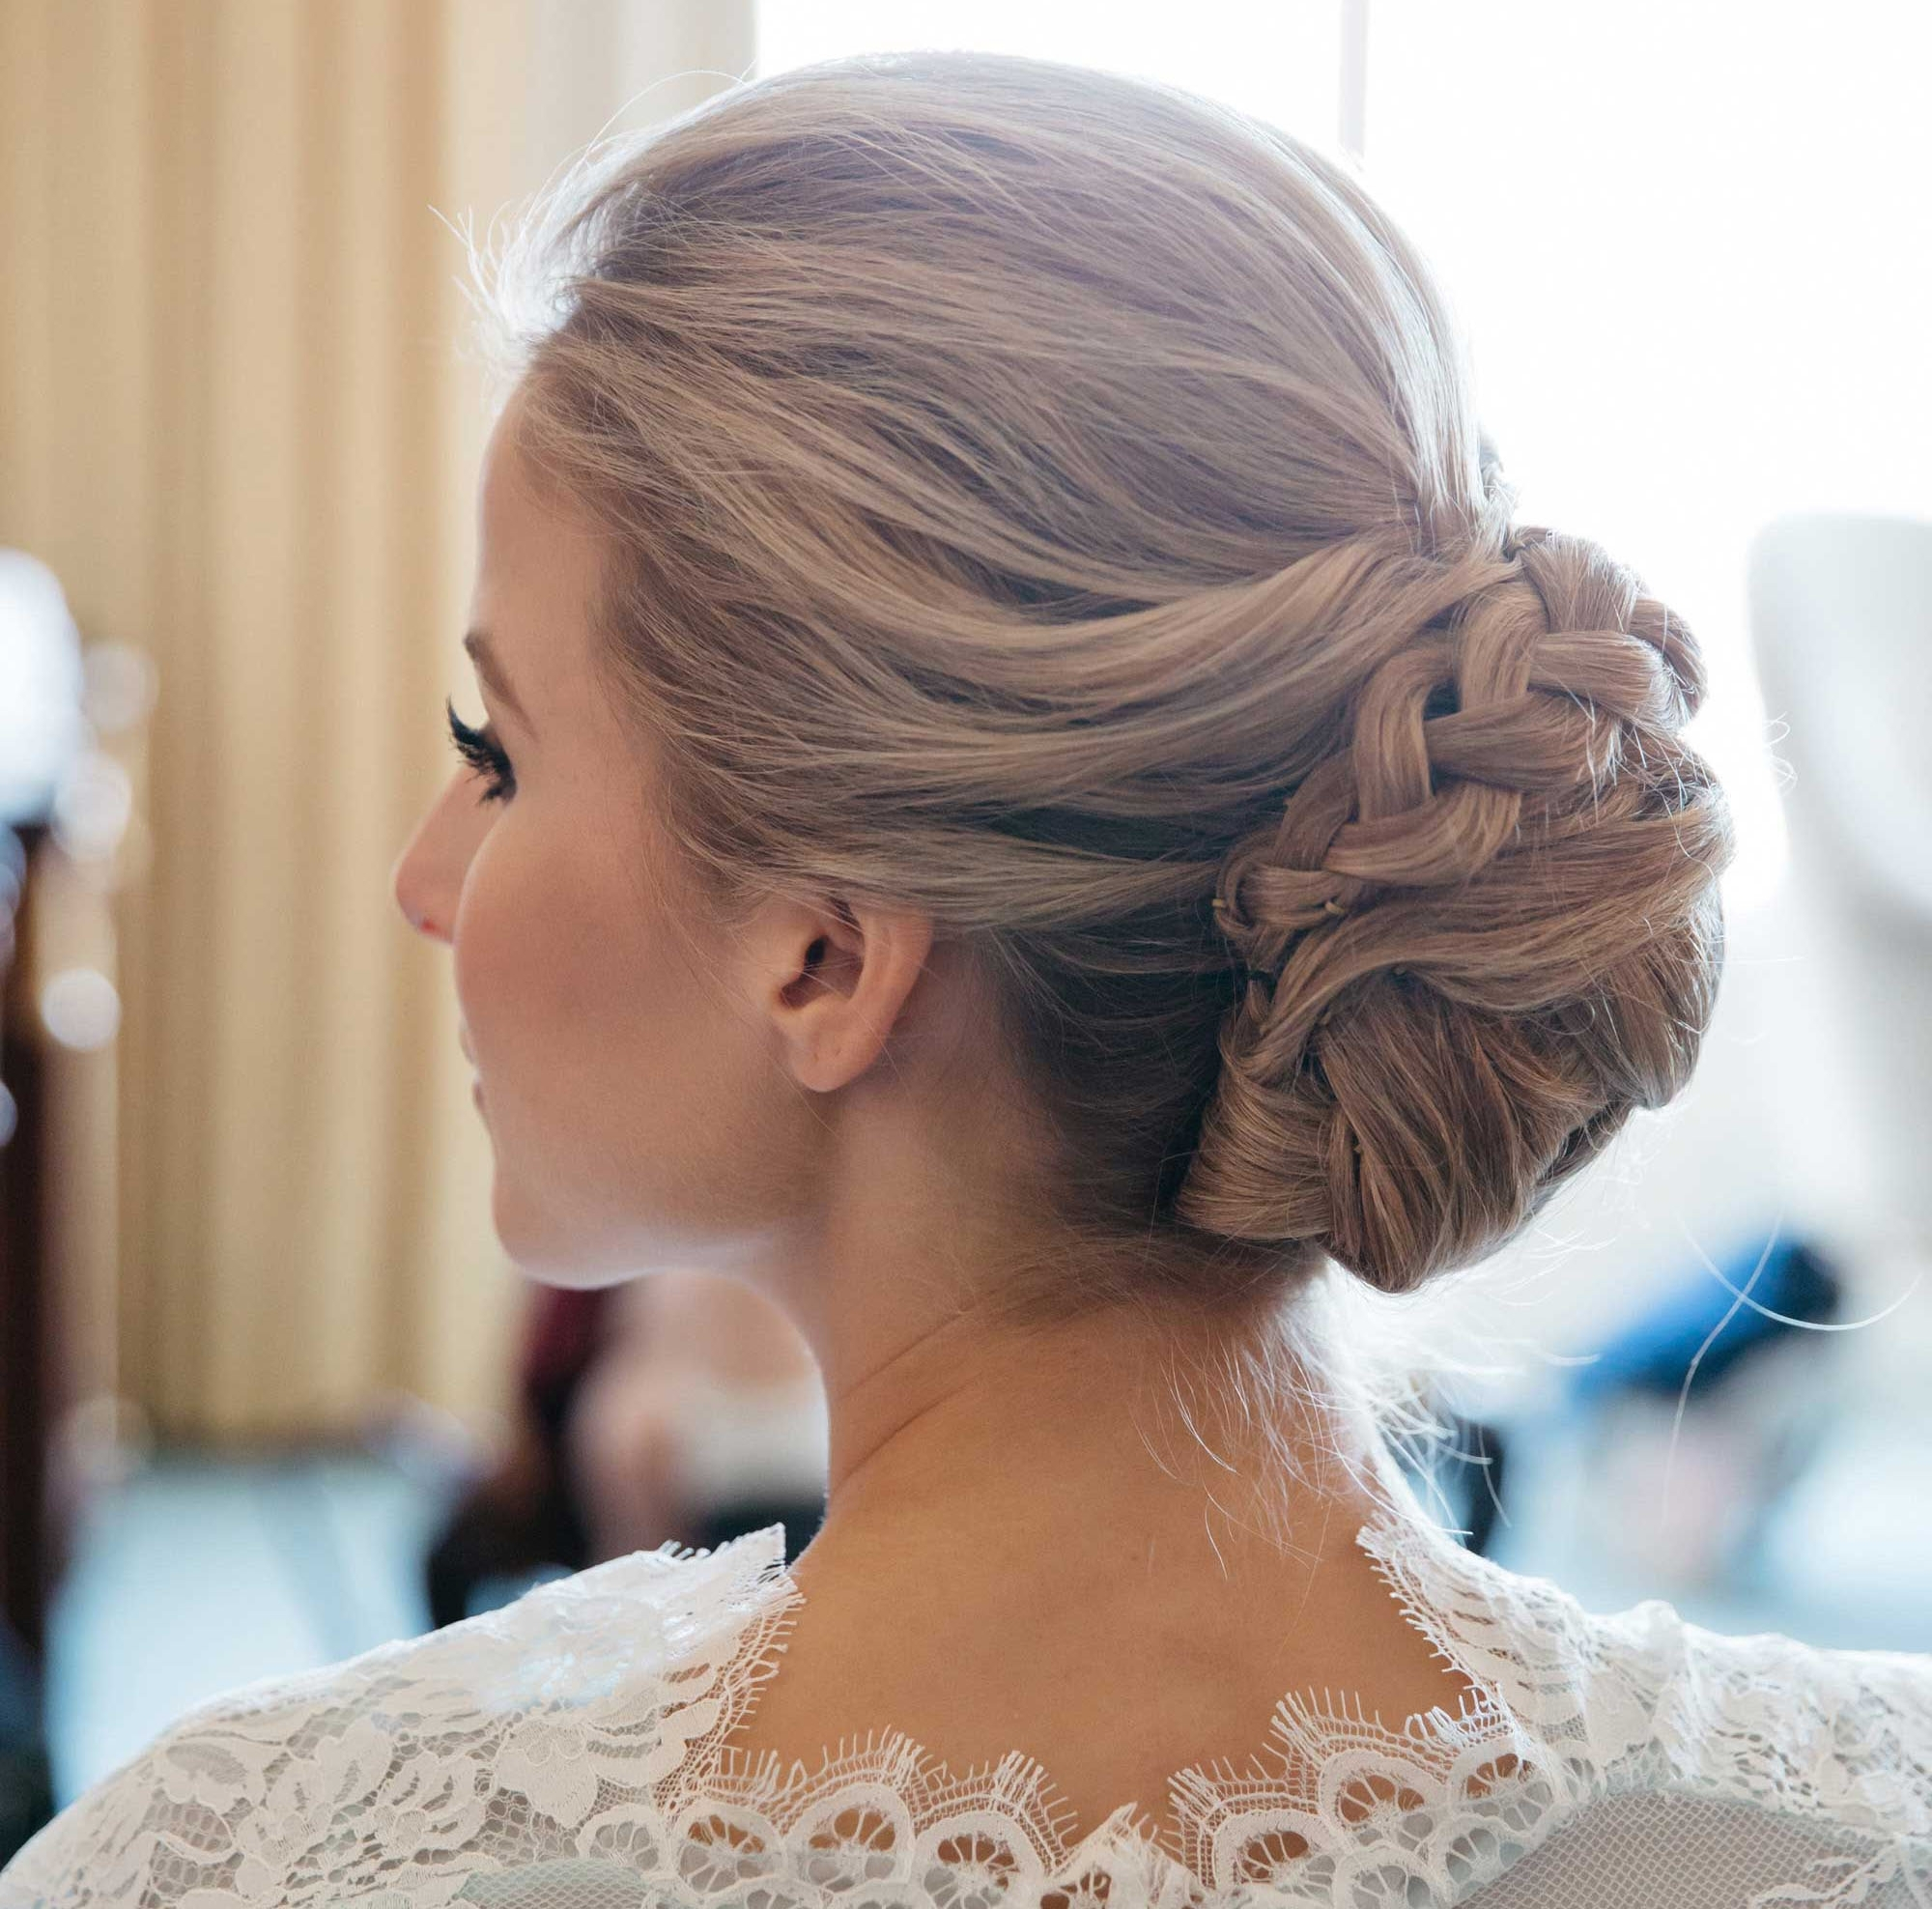 Latest Chignon Wedding Hairstyles Regarding Braided Hairstyles: 5 Ideas For Your Wedding Look – Inside Weddings (View 4 of 15)